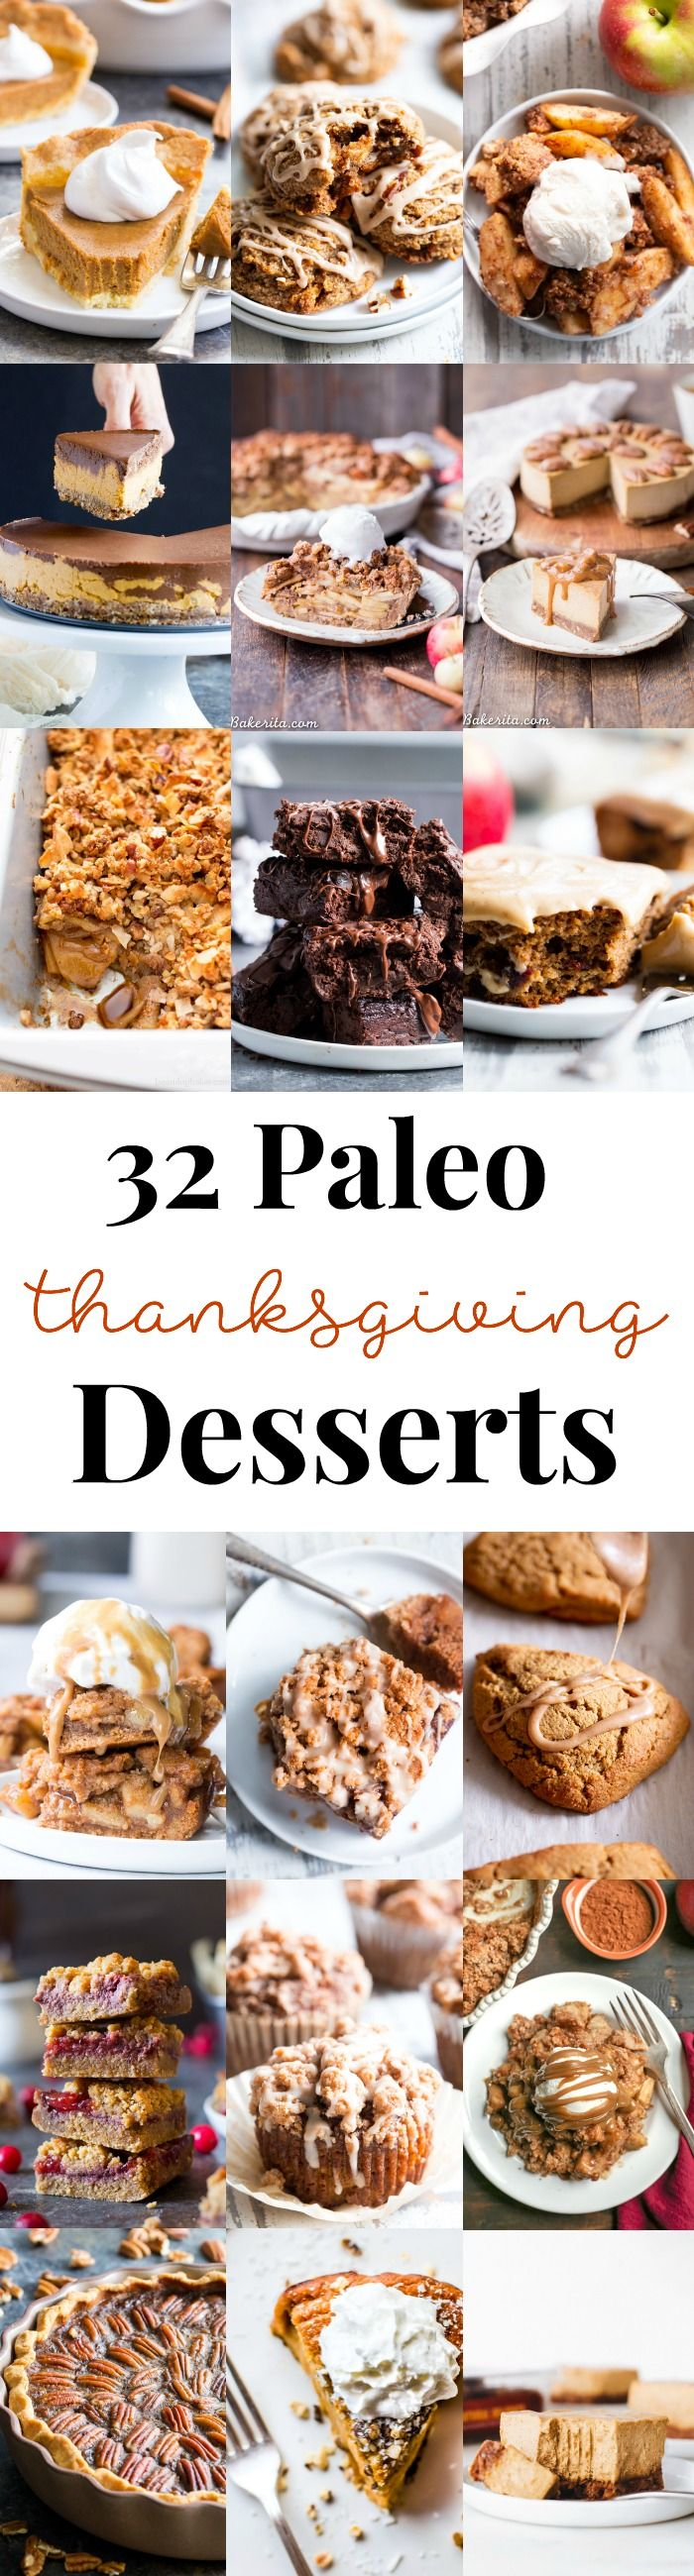 32 Paleo Thanksgiving Desserts